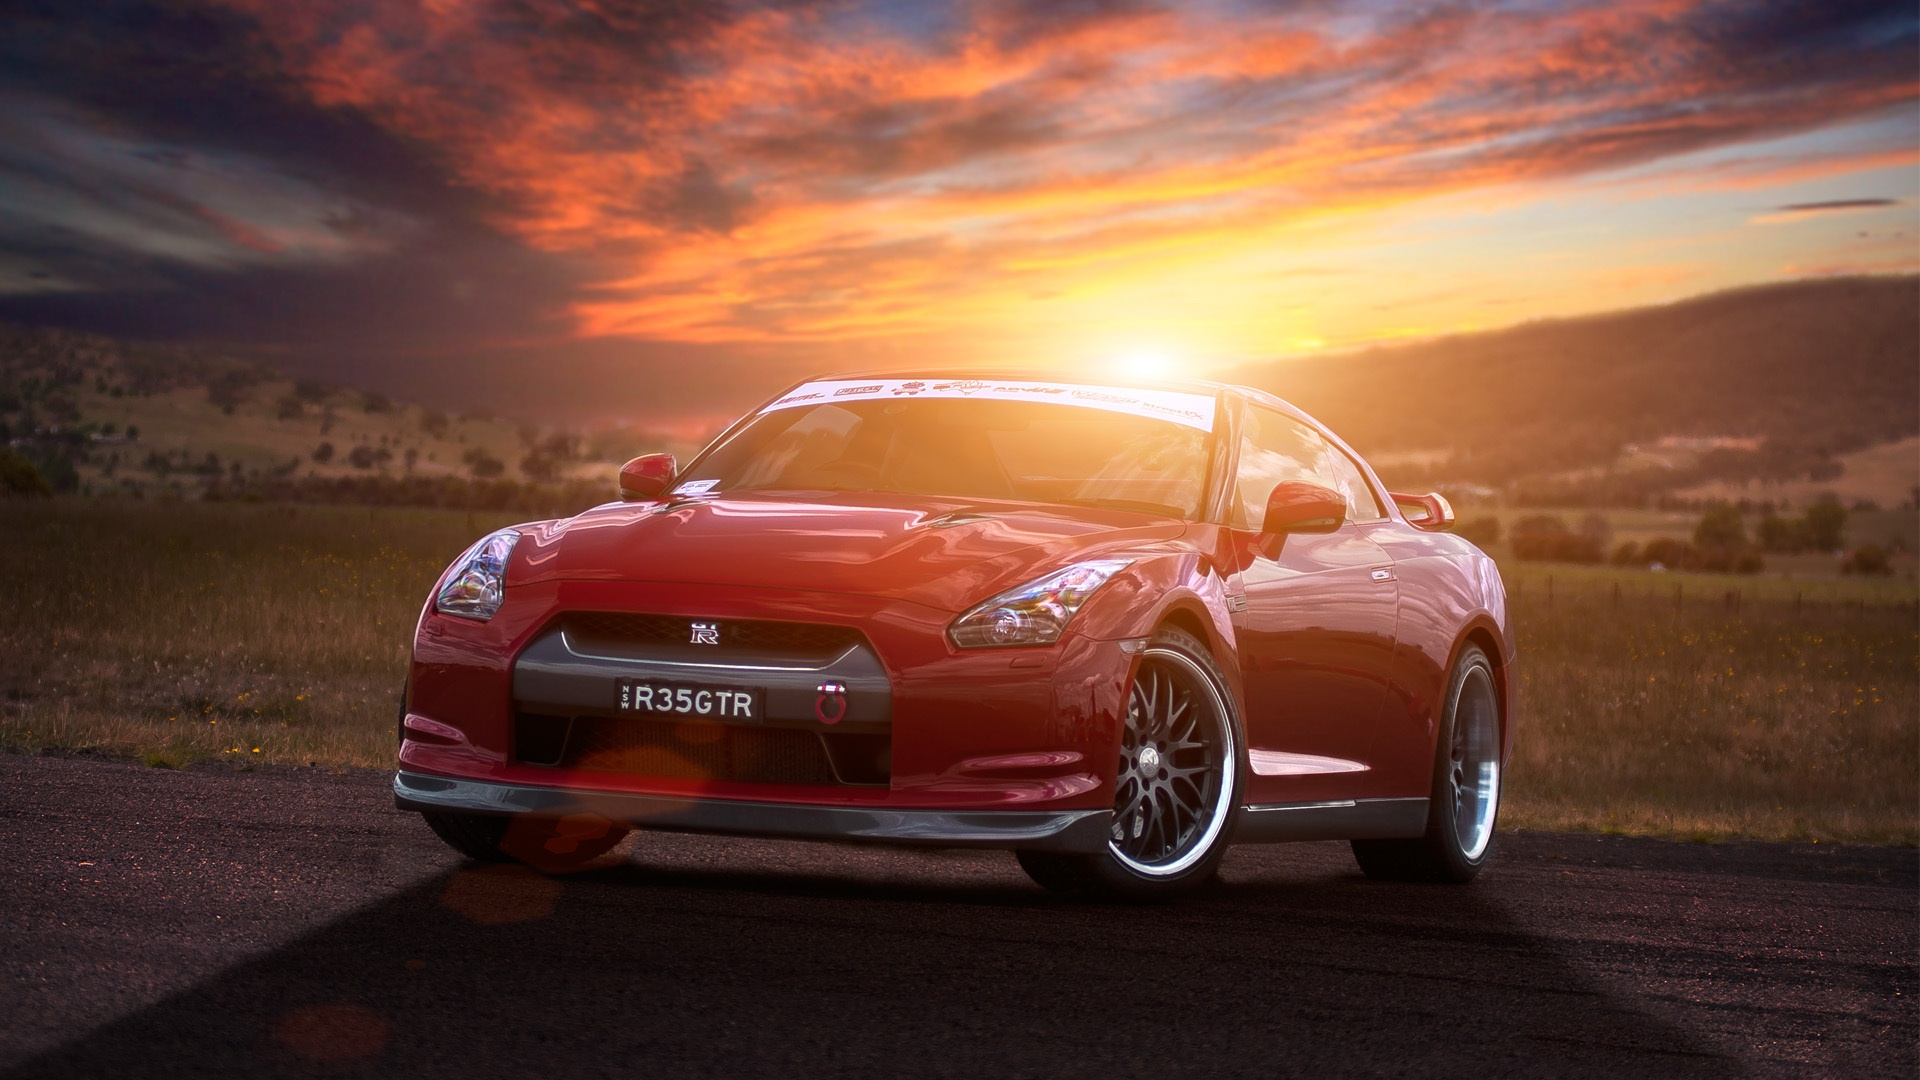 Nissan GT-R in the sunset